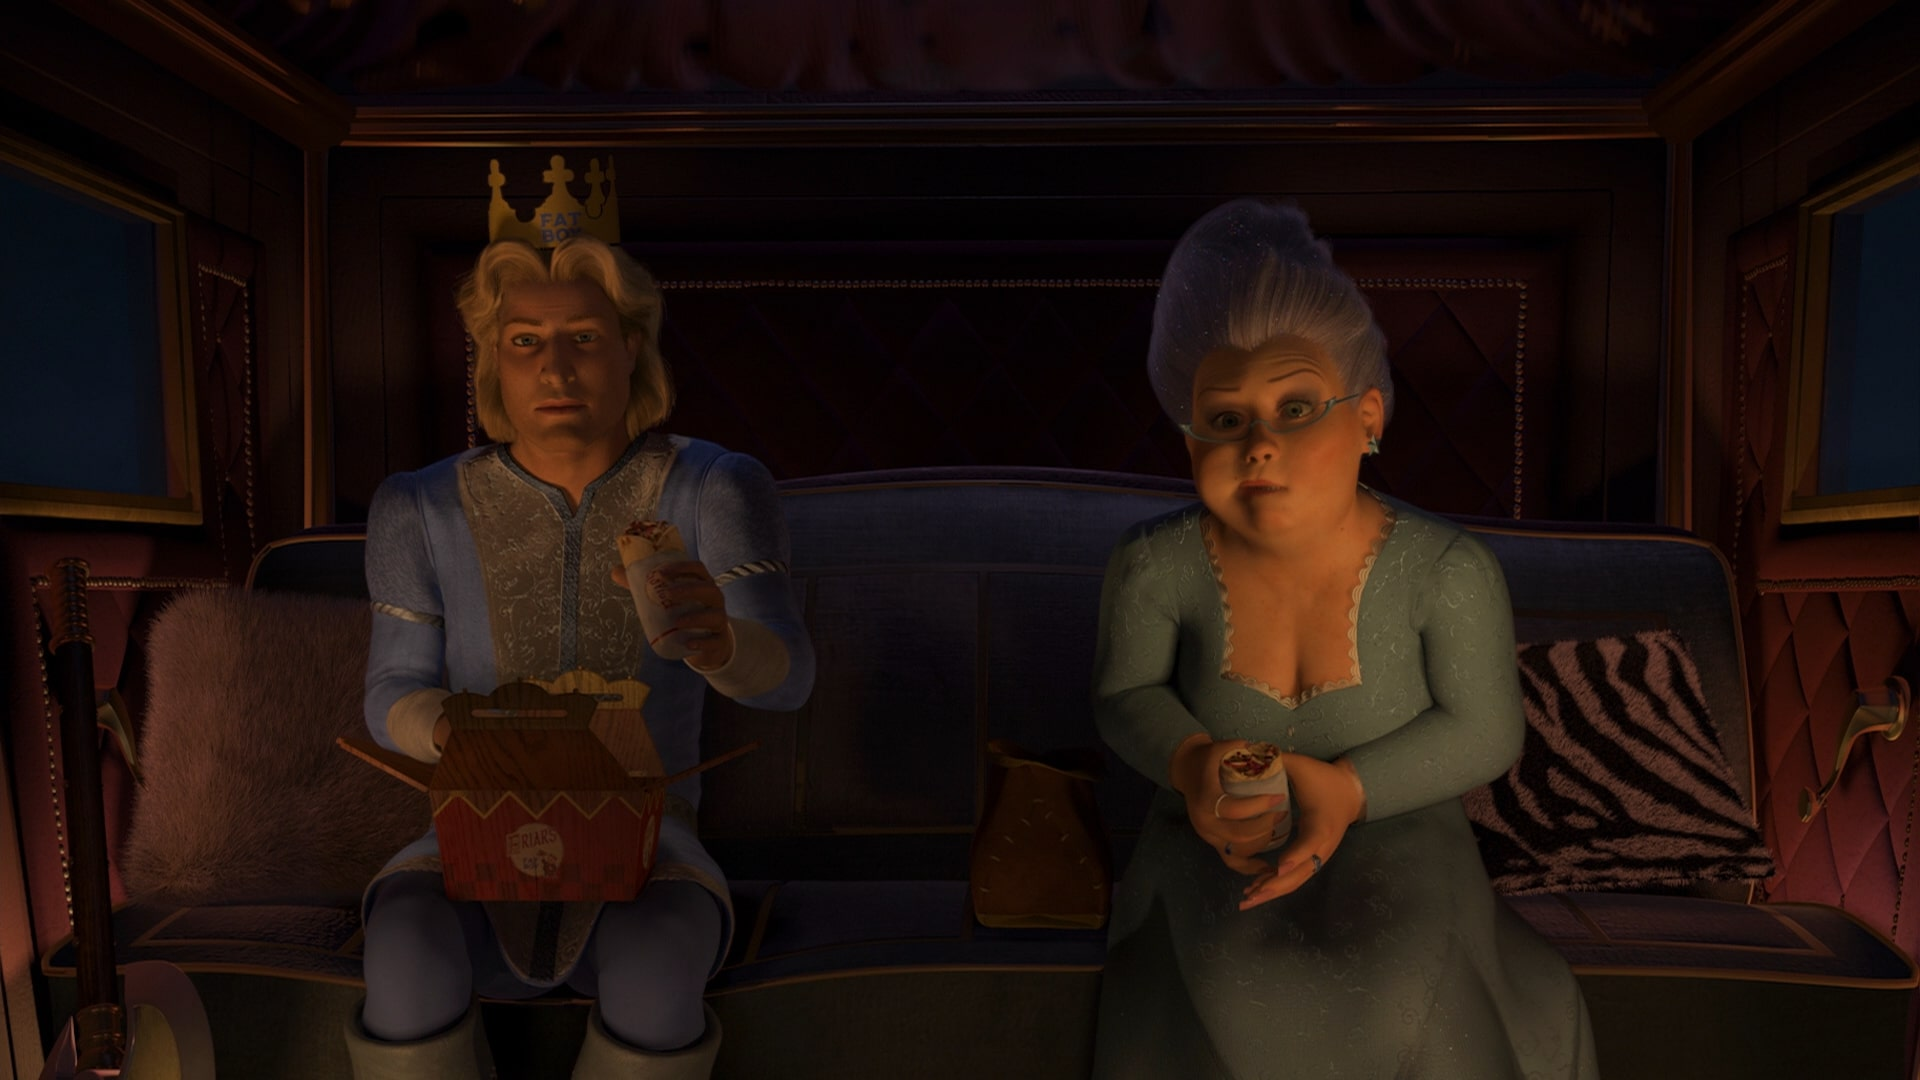 http://vignette2.wikia.nocookie.net/shrek/images/3/39/Prince_charming_and_fairy_godmother_eating_burritos_shrek_2.jpg/revision/latest?cb=20110531072808